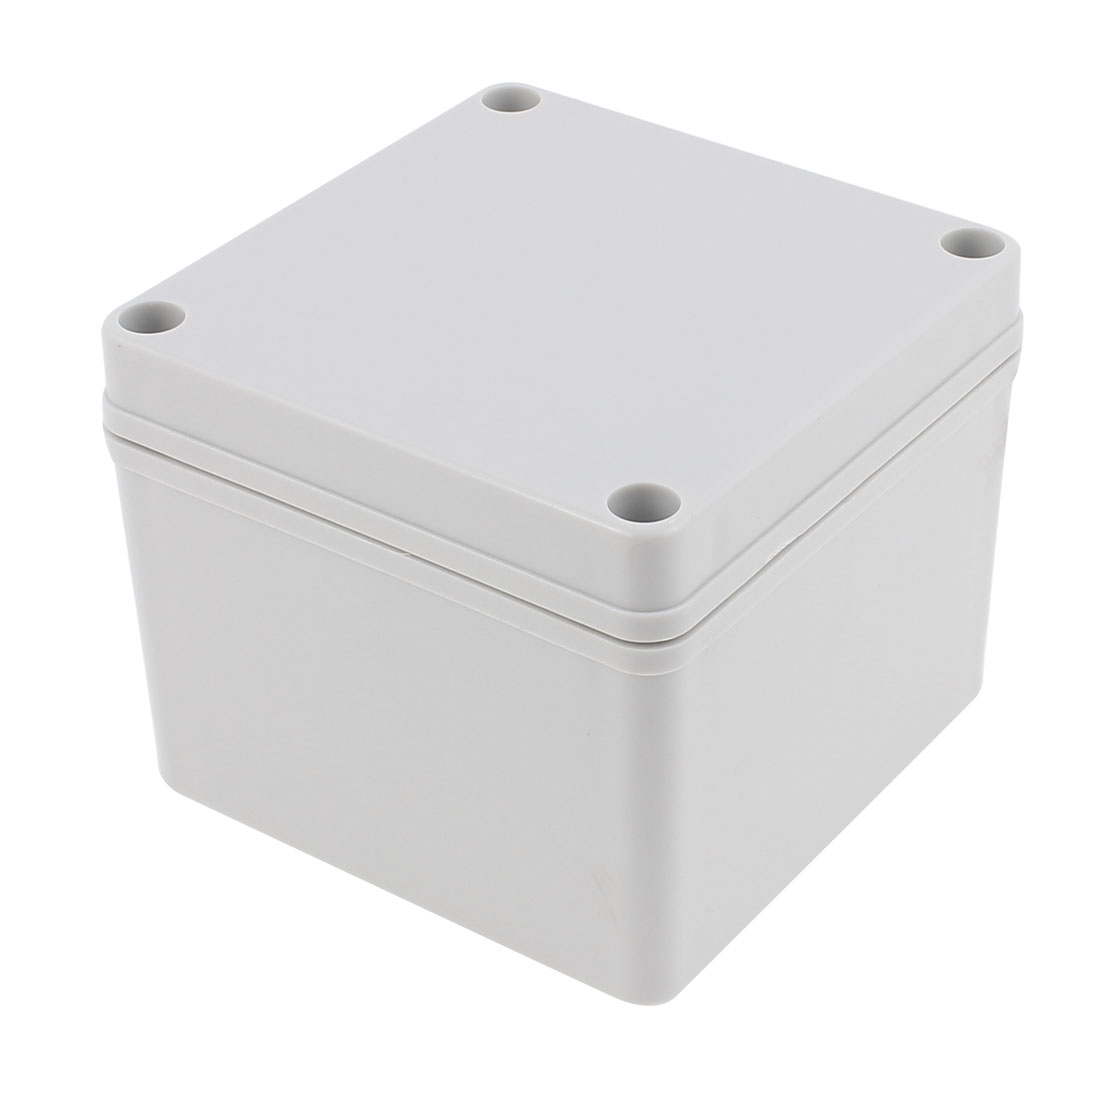 125 x 125 x 100mm Dustproof IP65 Junction Box Terminal Connecting Box Enclosure